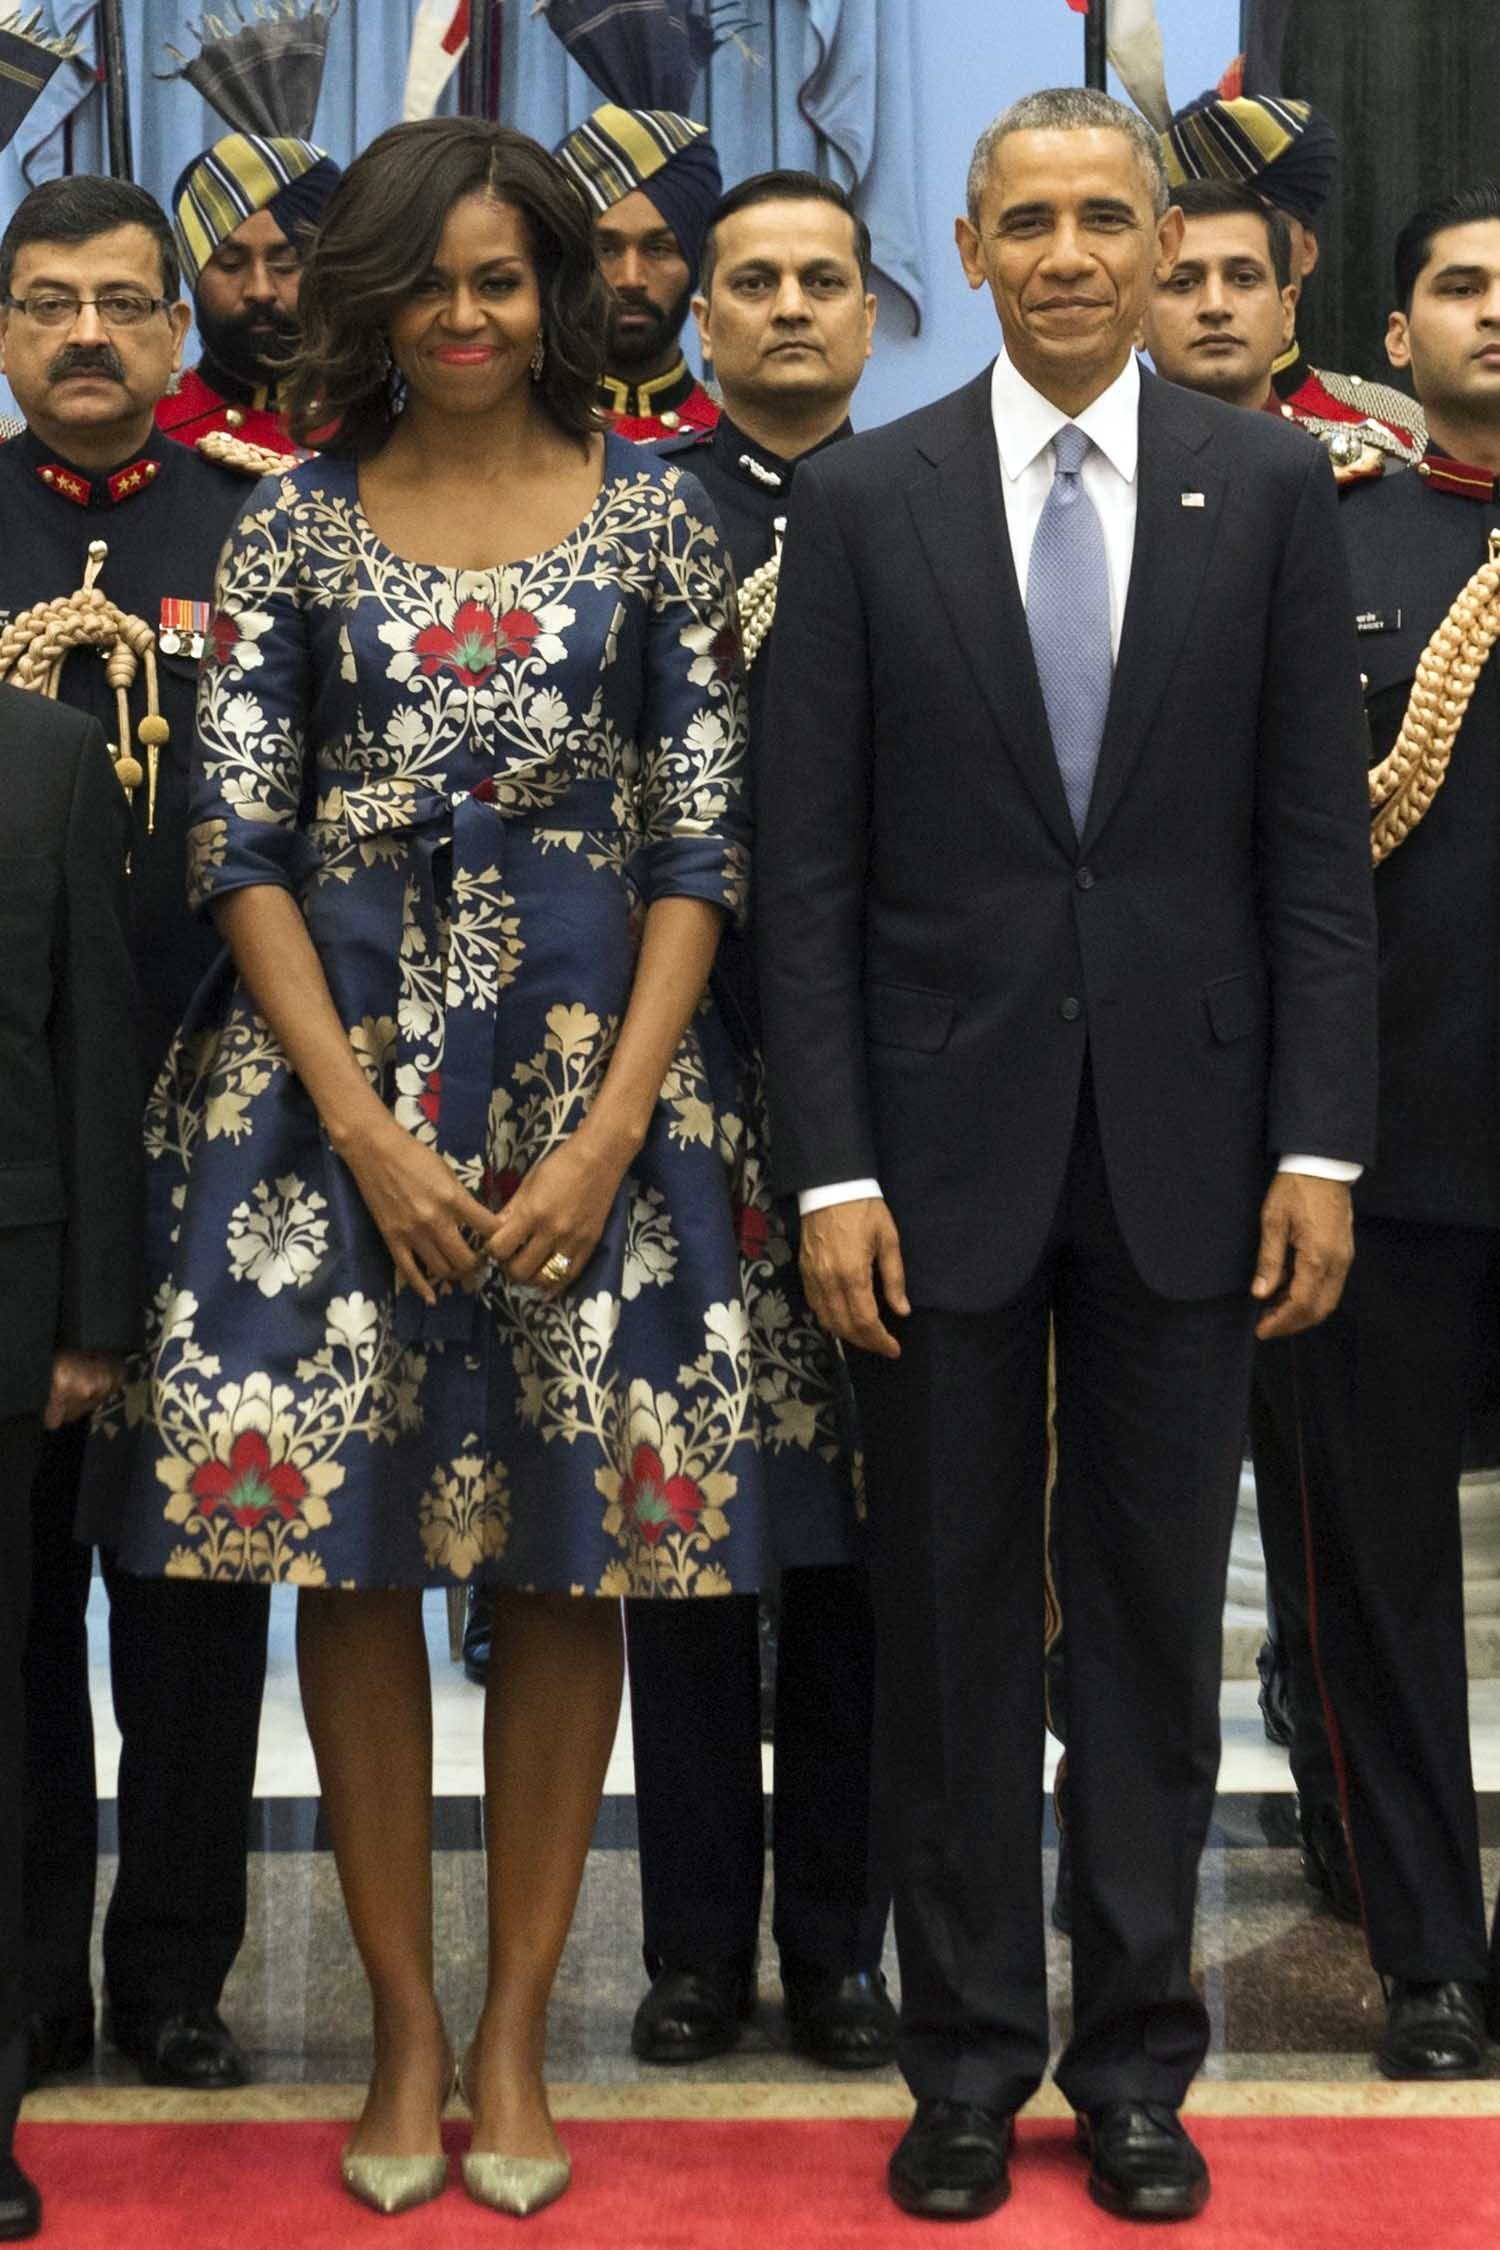 Indian President Pranab Mukherjee (L) stands alongside US President Barack Obama and First Lady Michelle Obama prior to participating in a receiving line before a State Dinner at Rashtrapati Bhawan, the Presidential Palace, in New Delhi, India, January 25, 2015. AFP PHOTO / SAUL LOEB        (Photo credit should read SAUL LOEB/AFP/Getty Images)